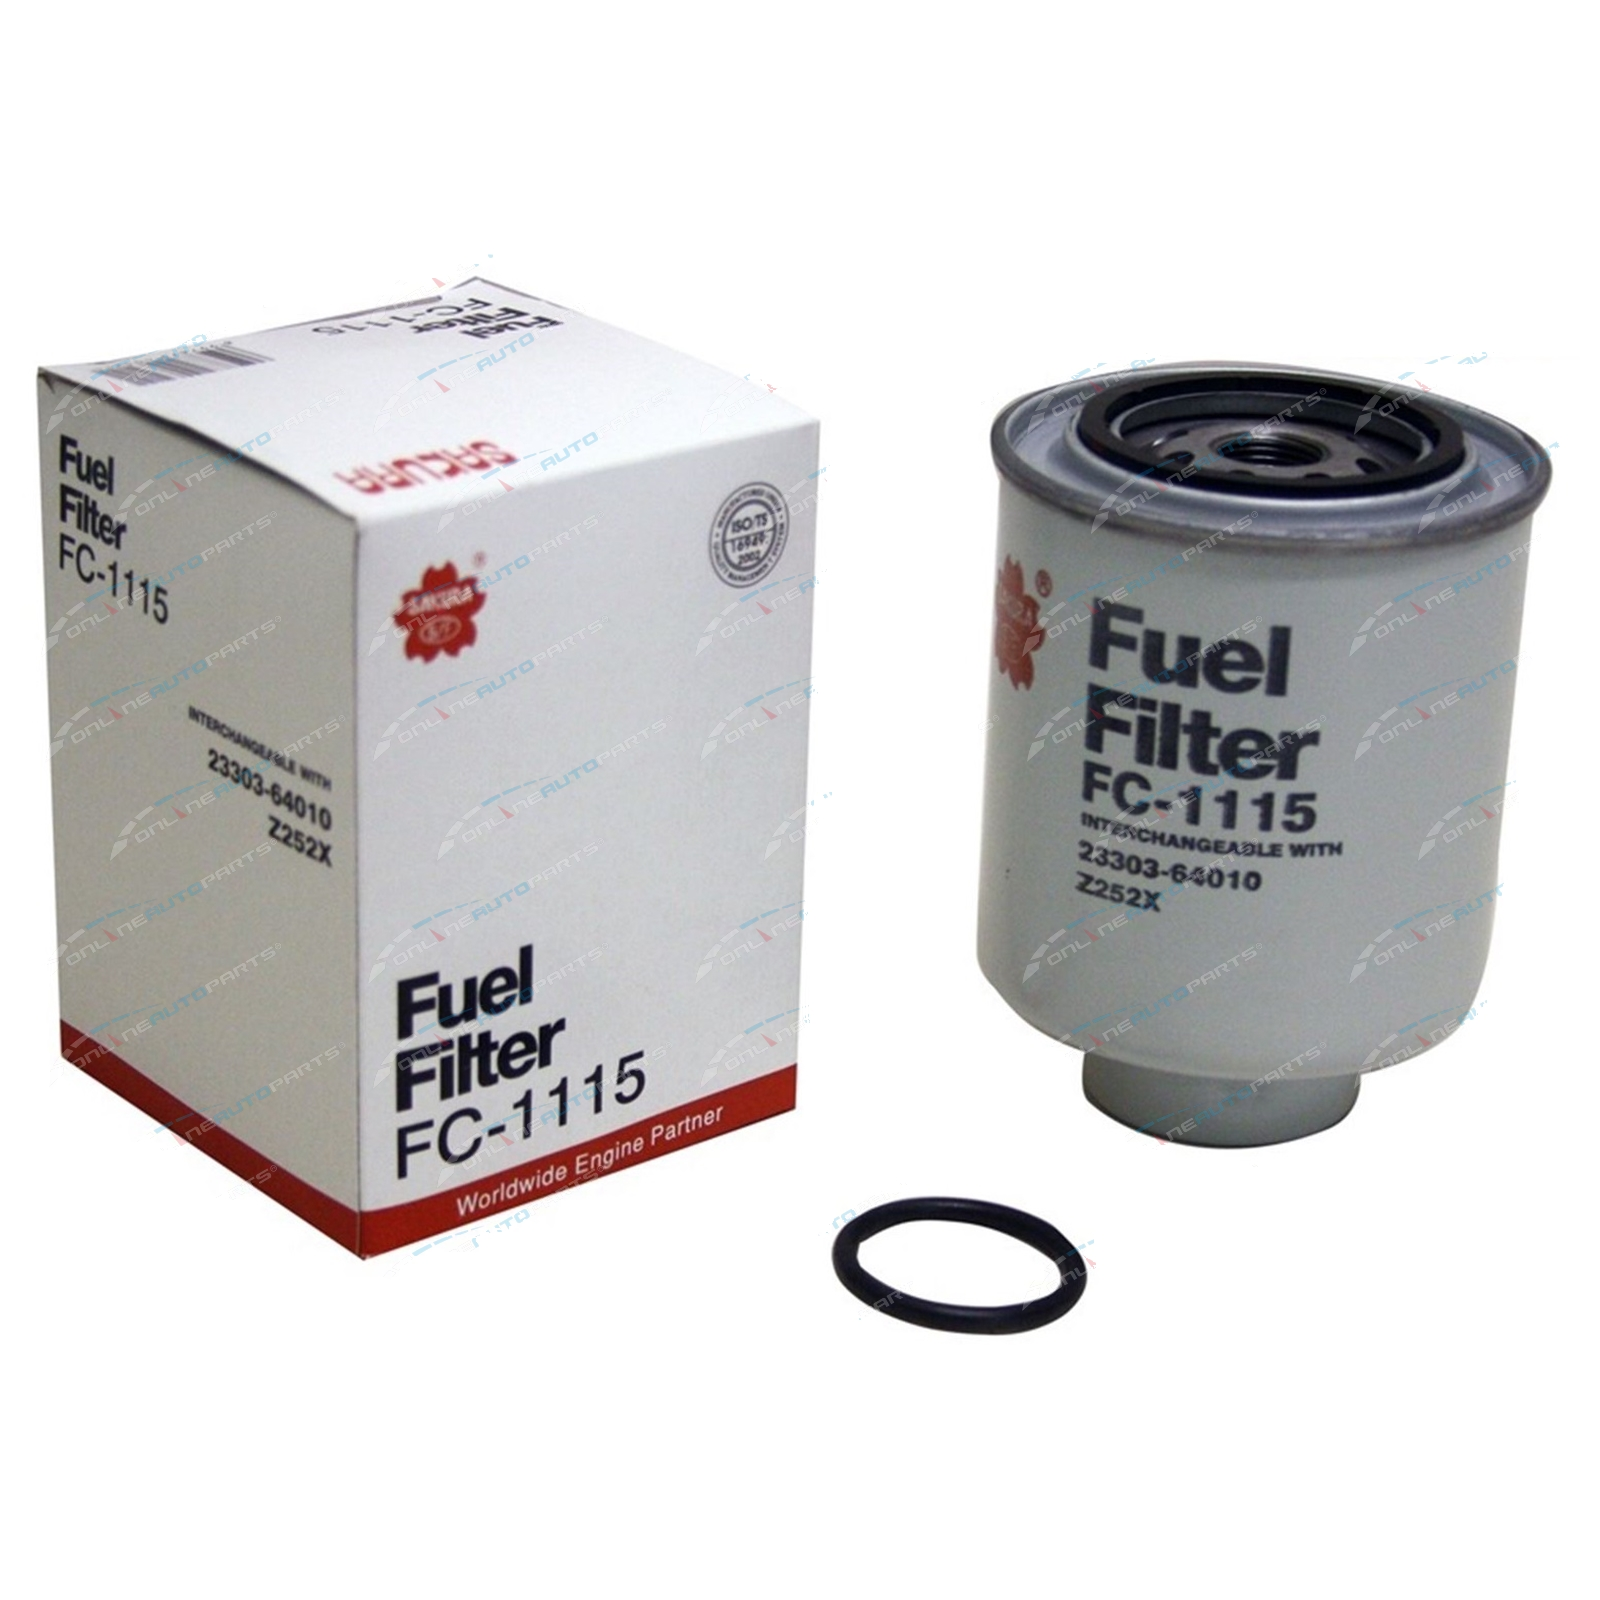 Diesel Fuel Filters Suits Toyota Landcruiser 42l 1hz Bulk Carton Of Click To Enlarge